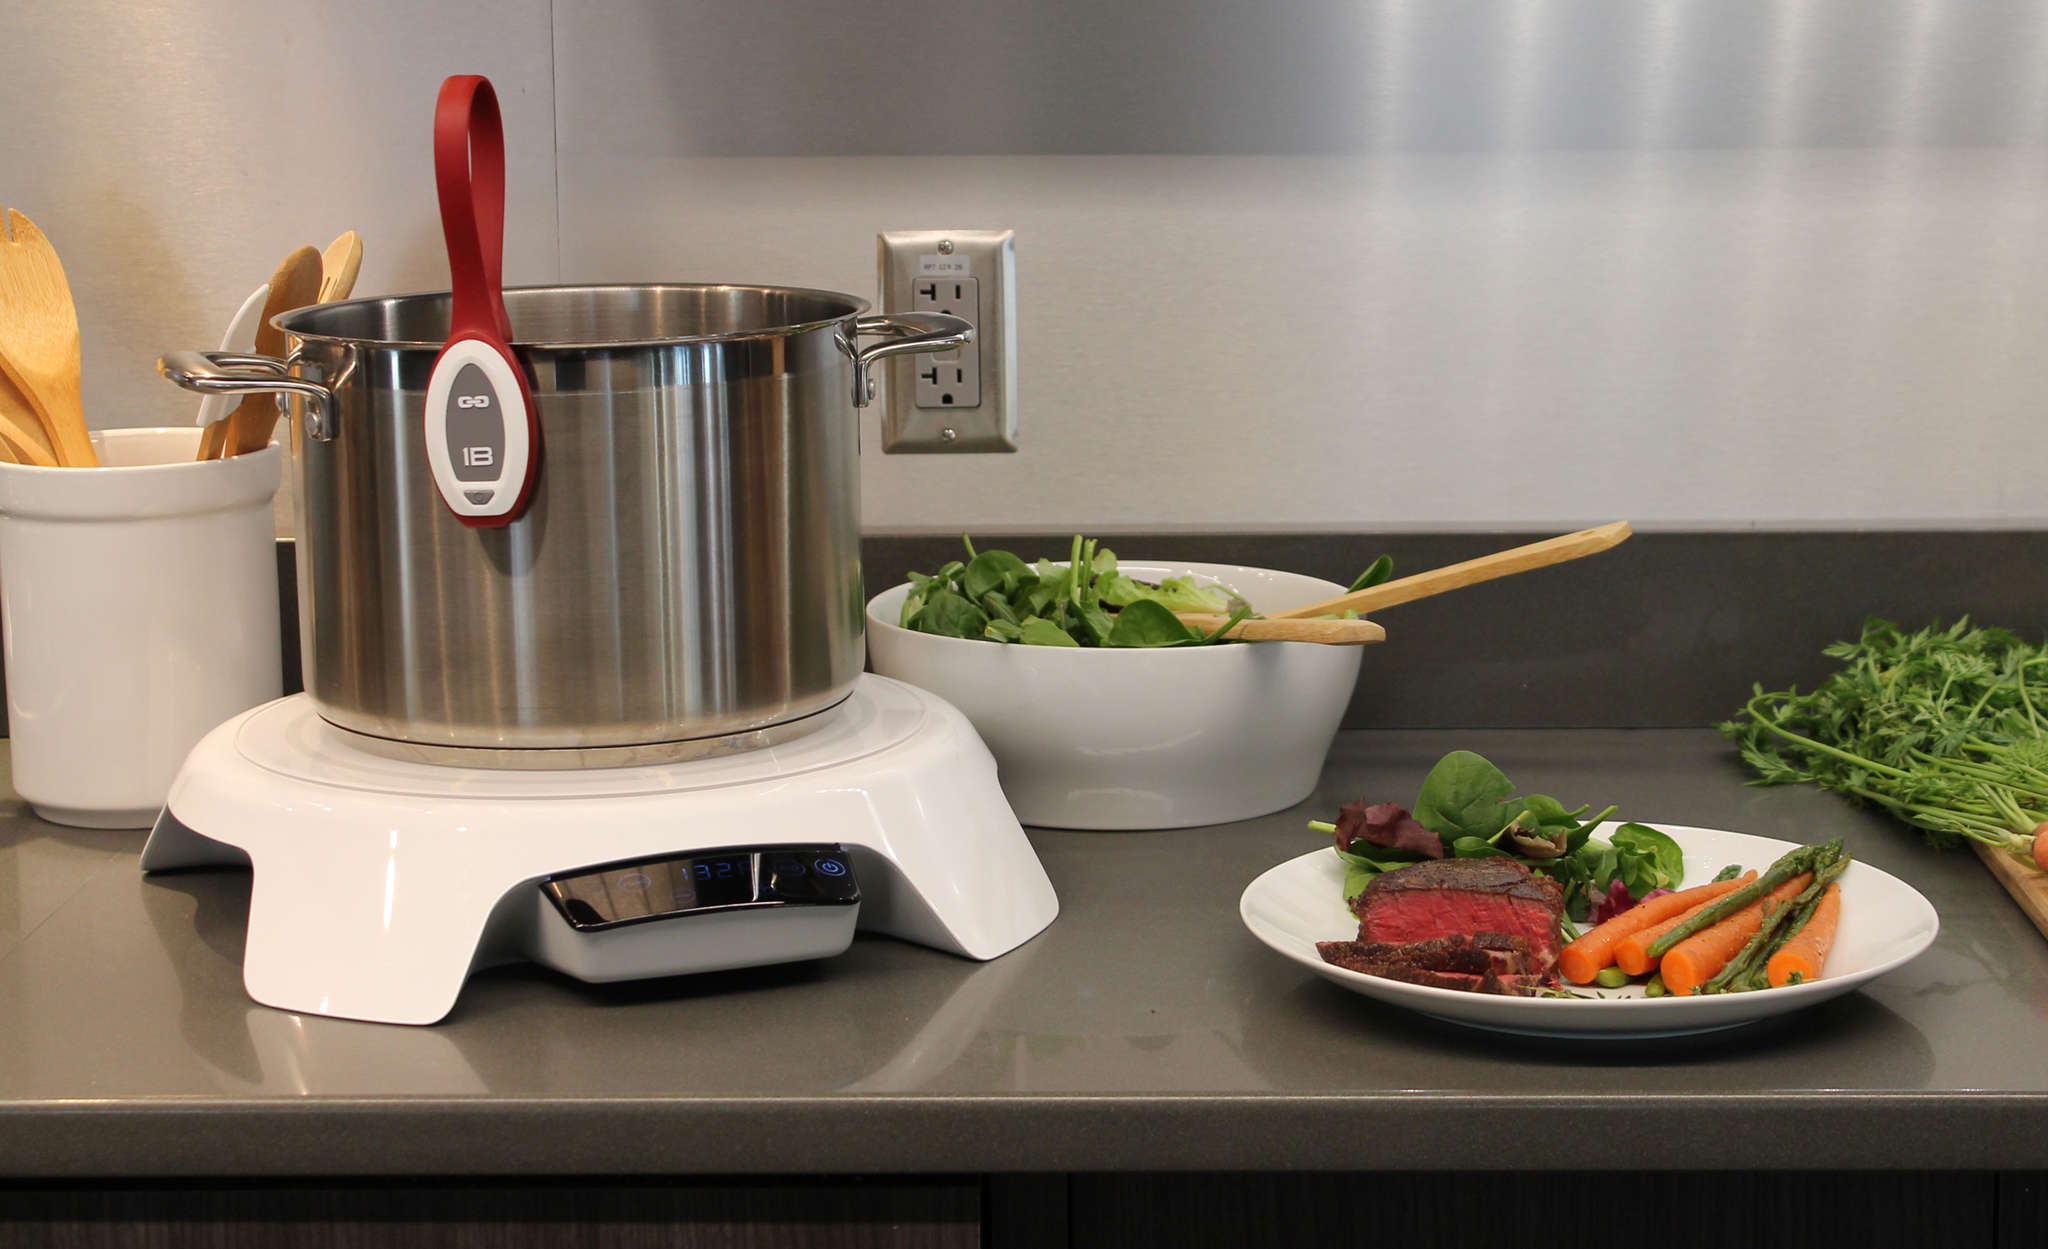 The Paragon Precision Induction Cooktop is ripe for sous vide and chefs cooking in the 21st century.